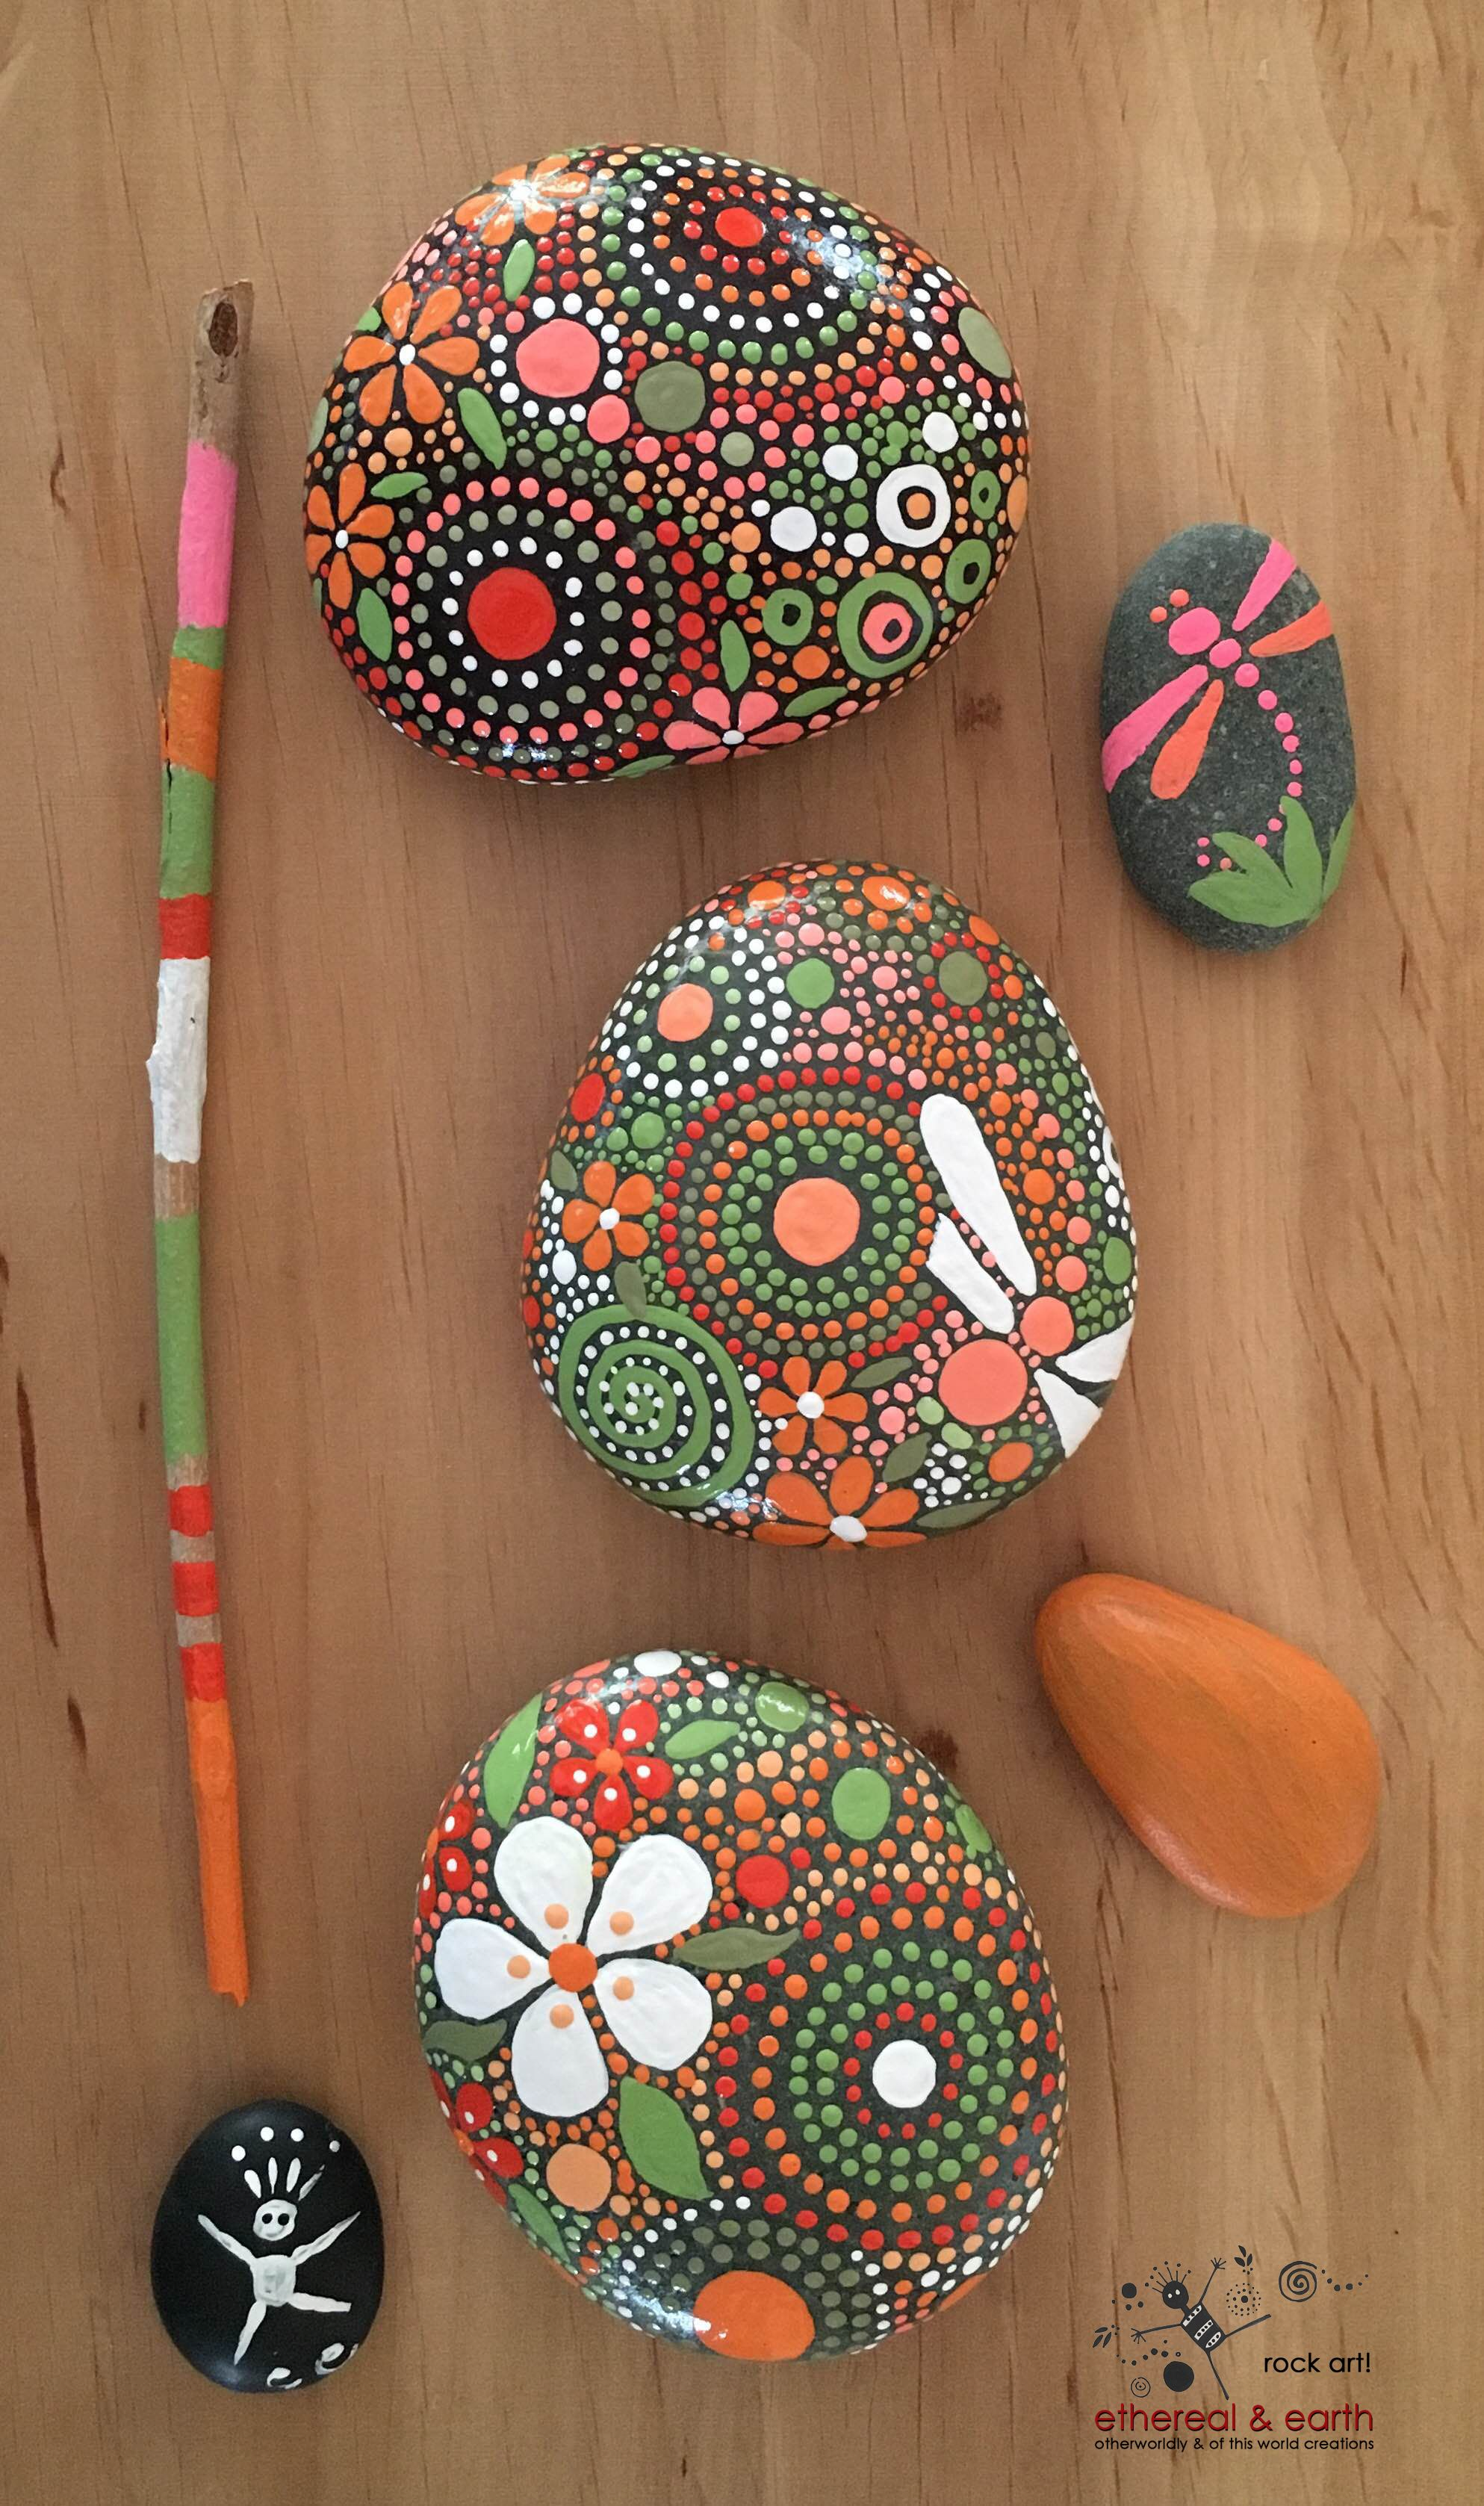 painted rocks, hand-painted stones, mandala inspired design